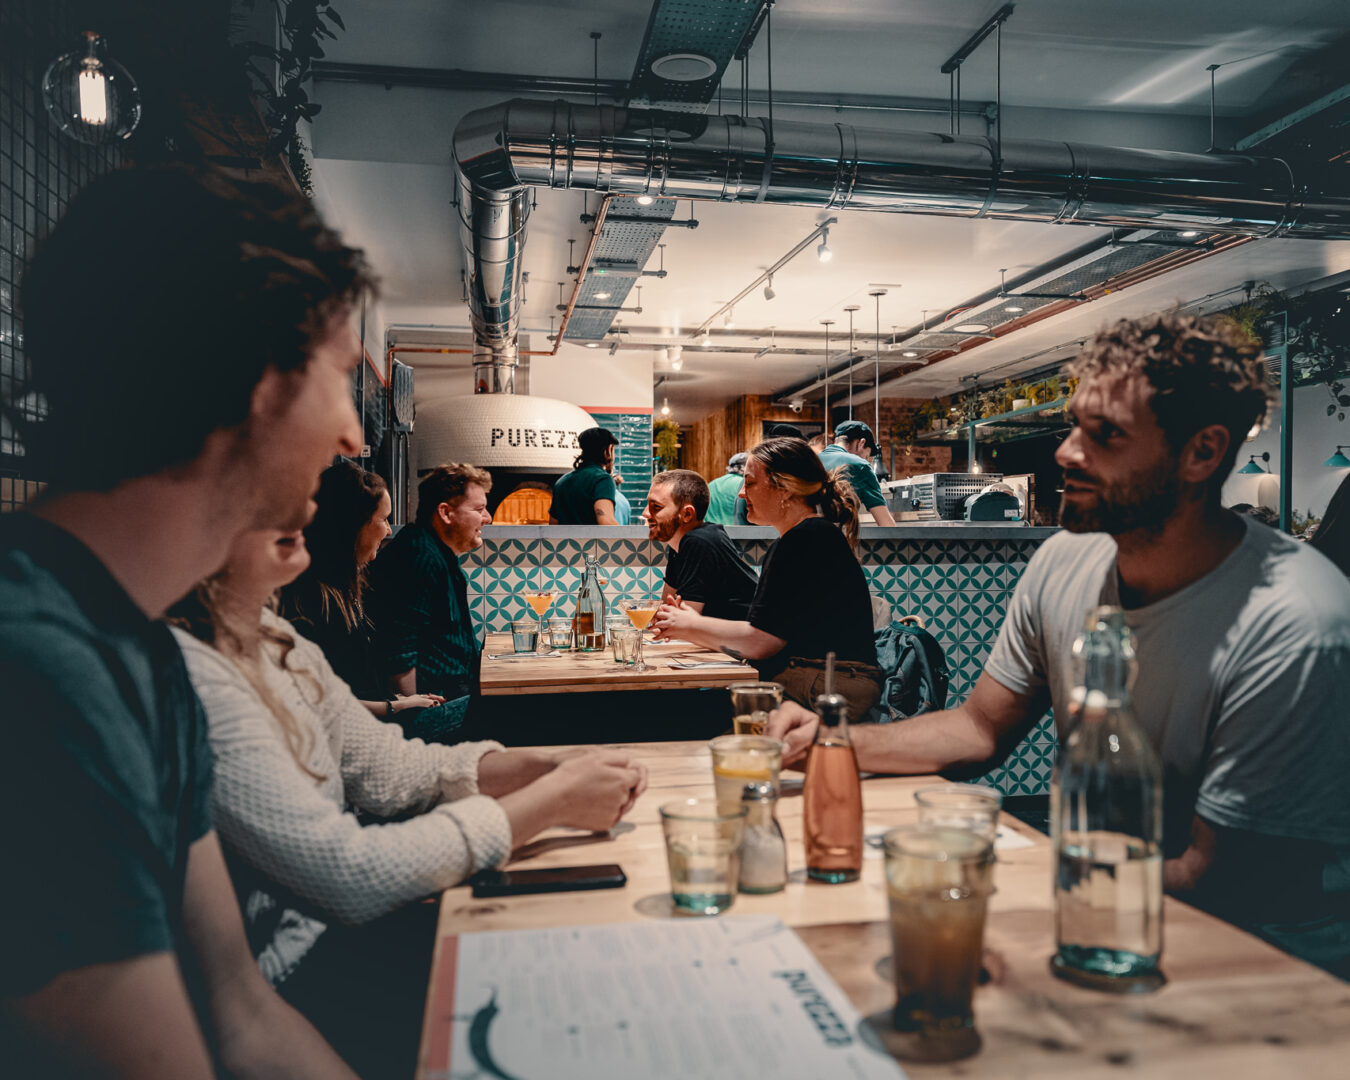 A group of people dining at Purezza Bristol during a busy evening.